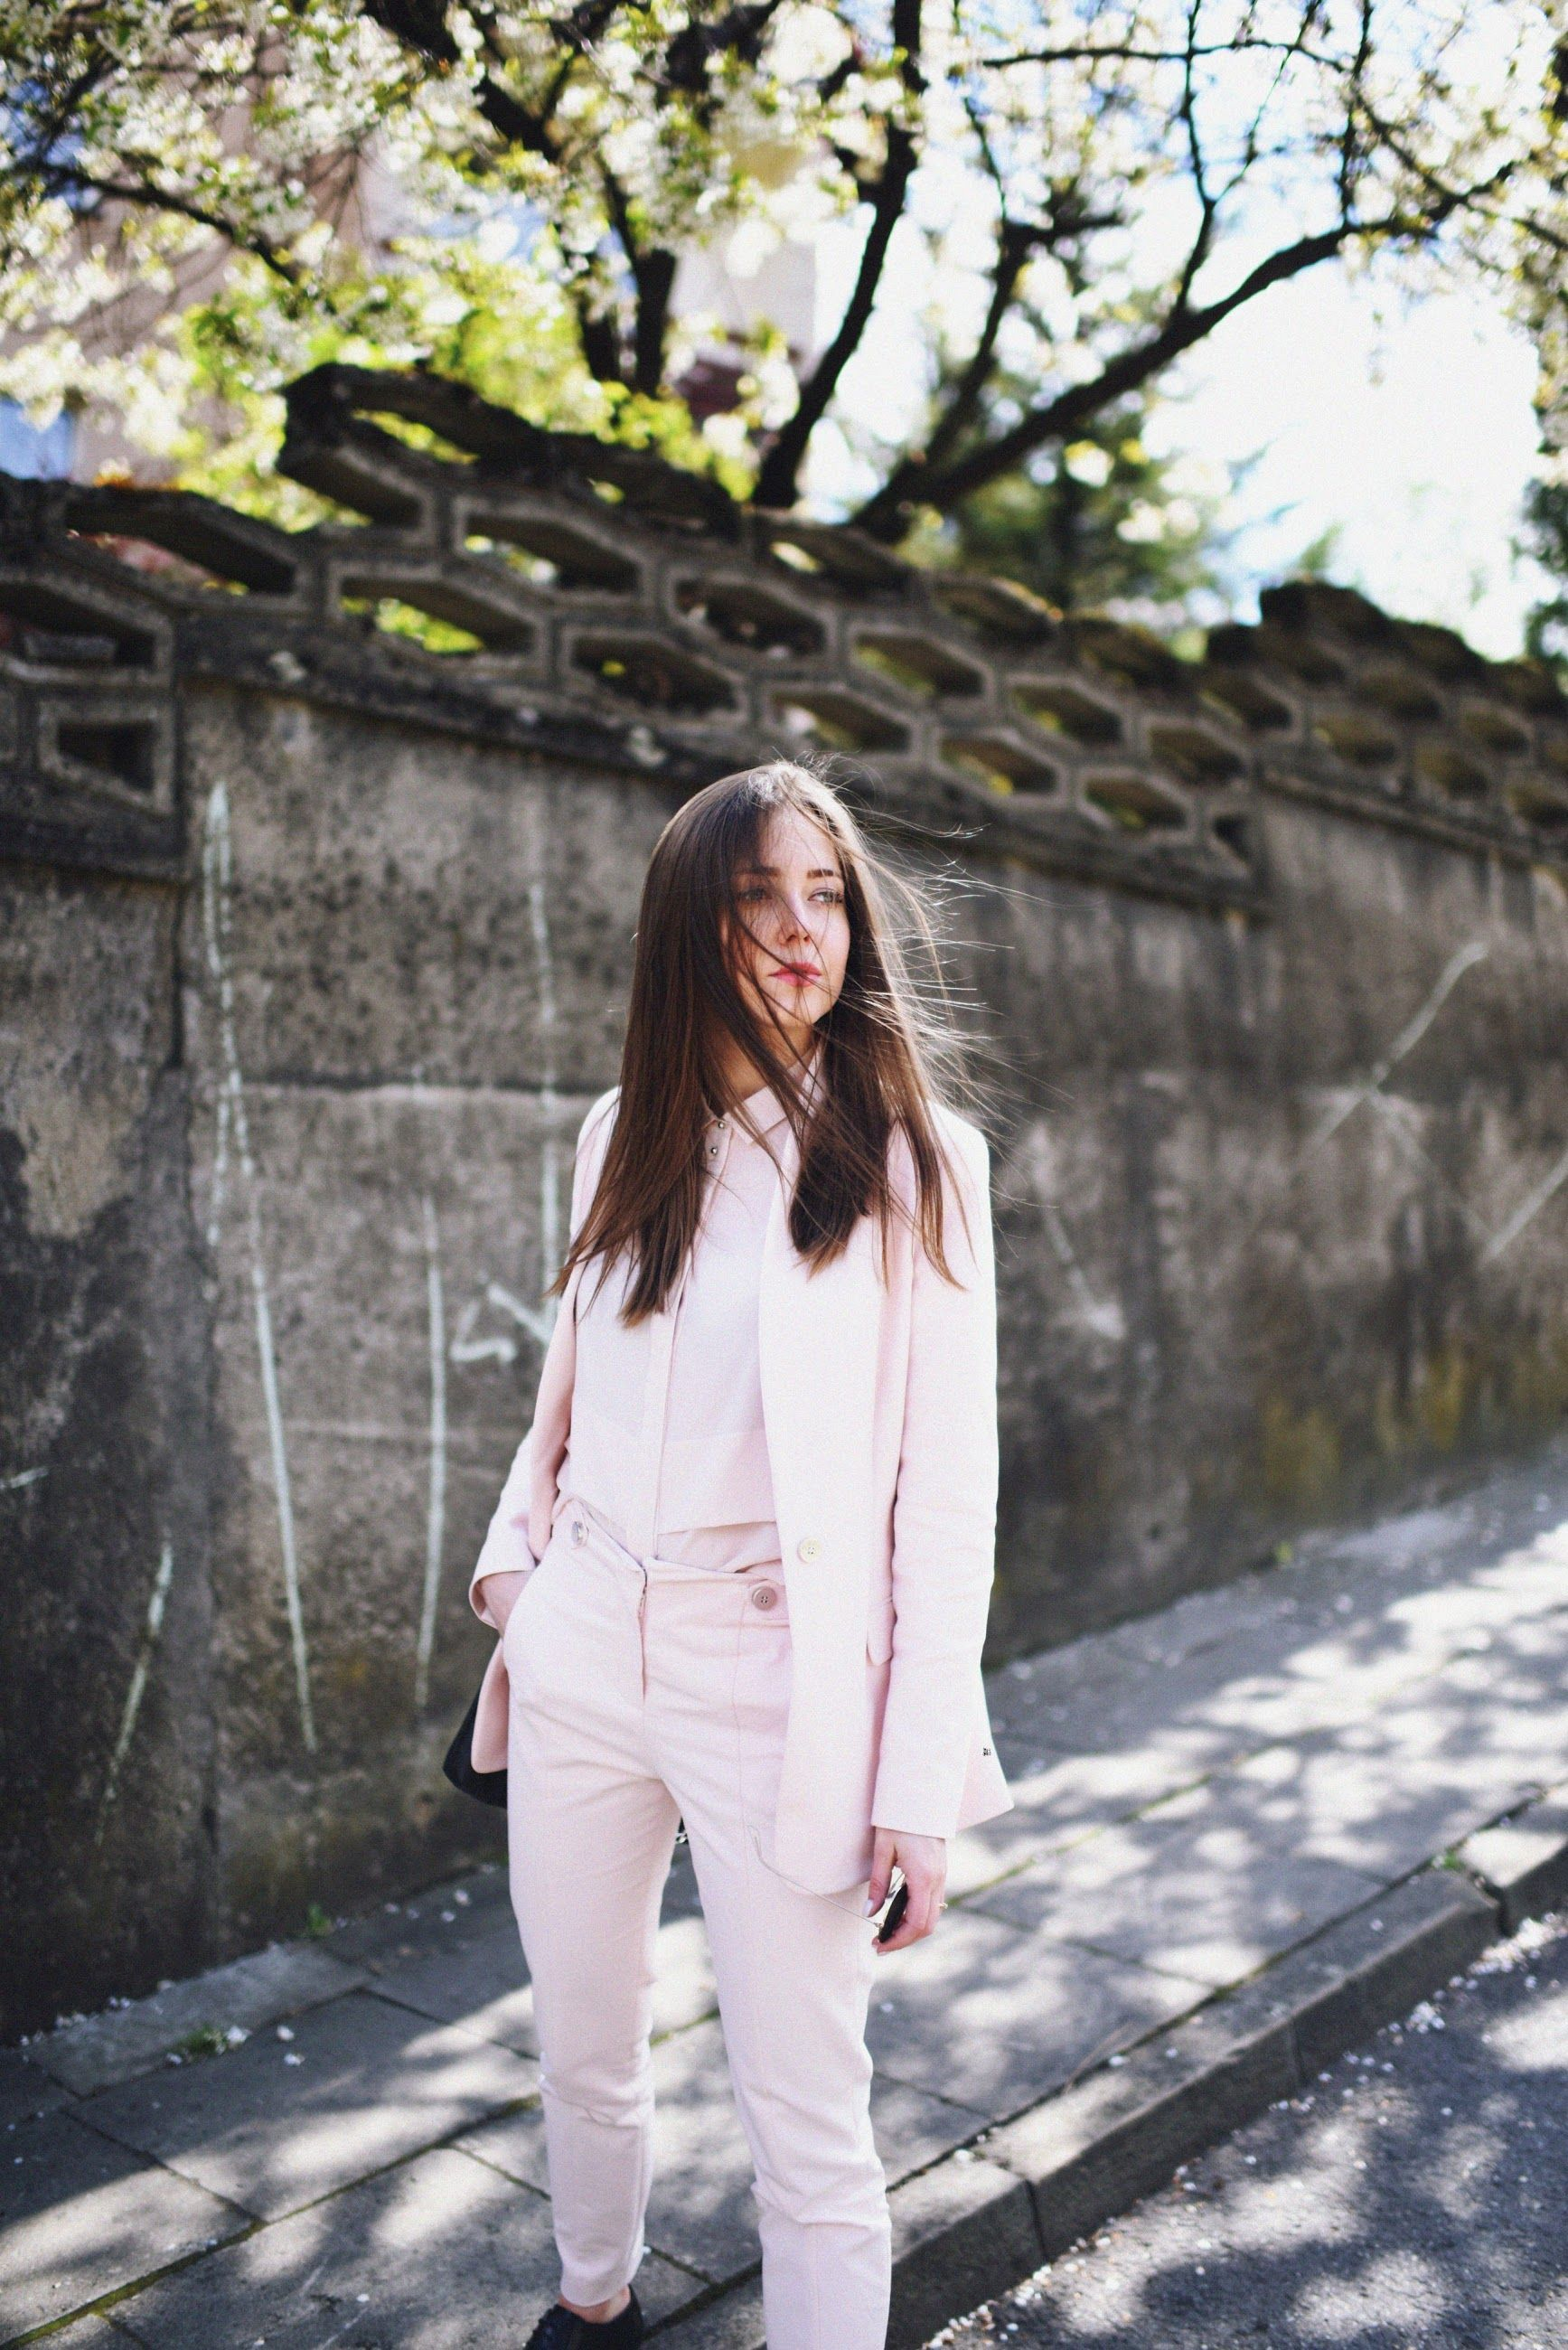 Jestem Kasia / Light pink suit //  #Fashion, #FashionBlog, #FashionBlogger, #Ootd, #OutfitOfTheDay, #Style